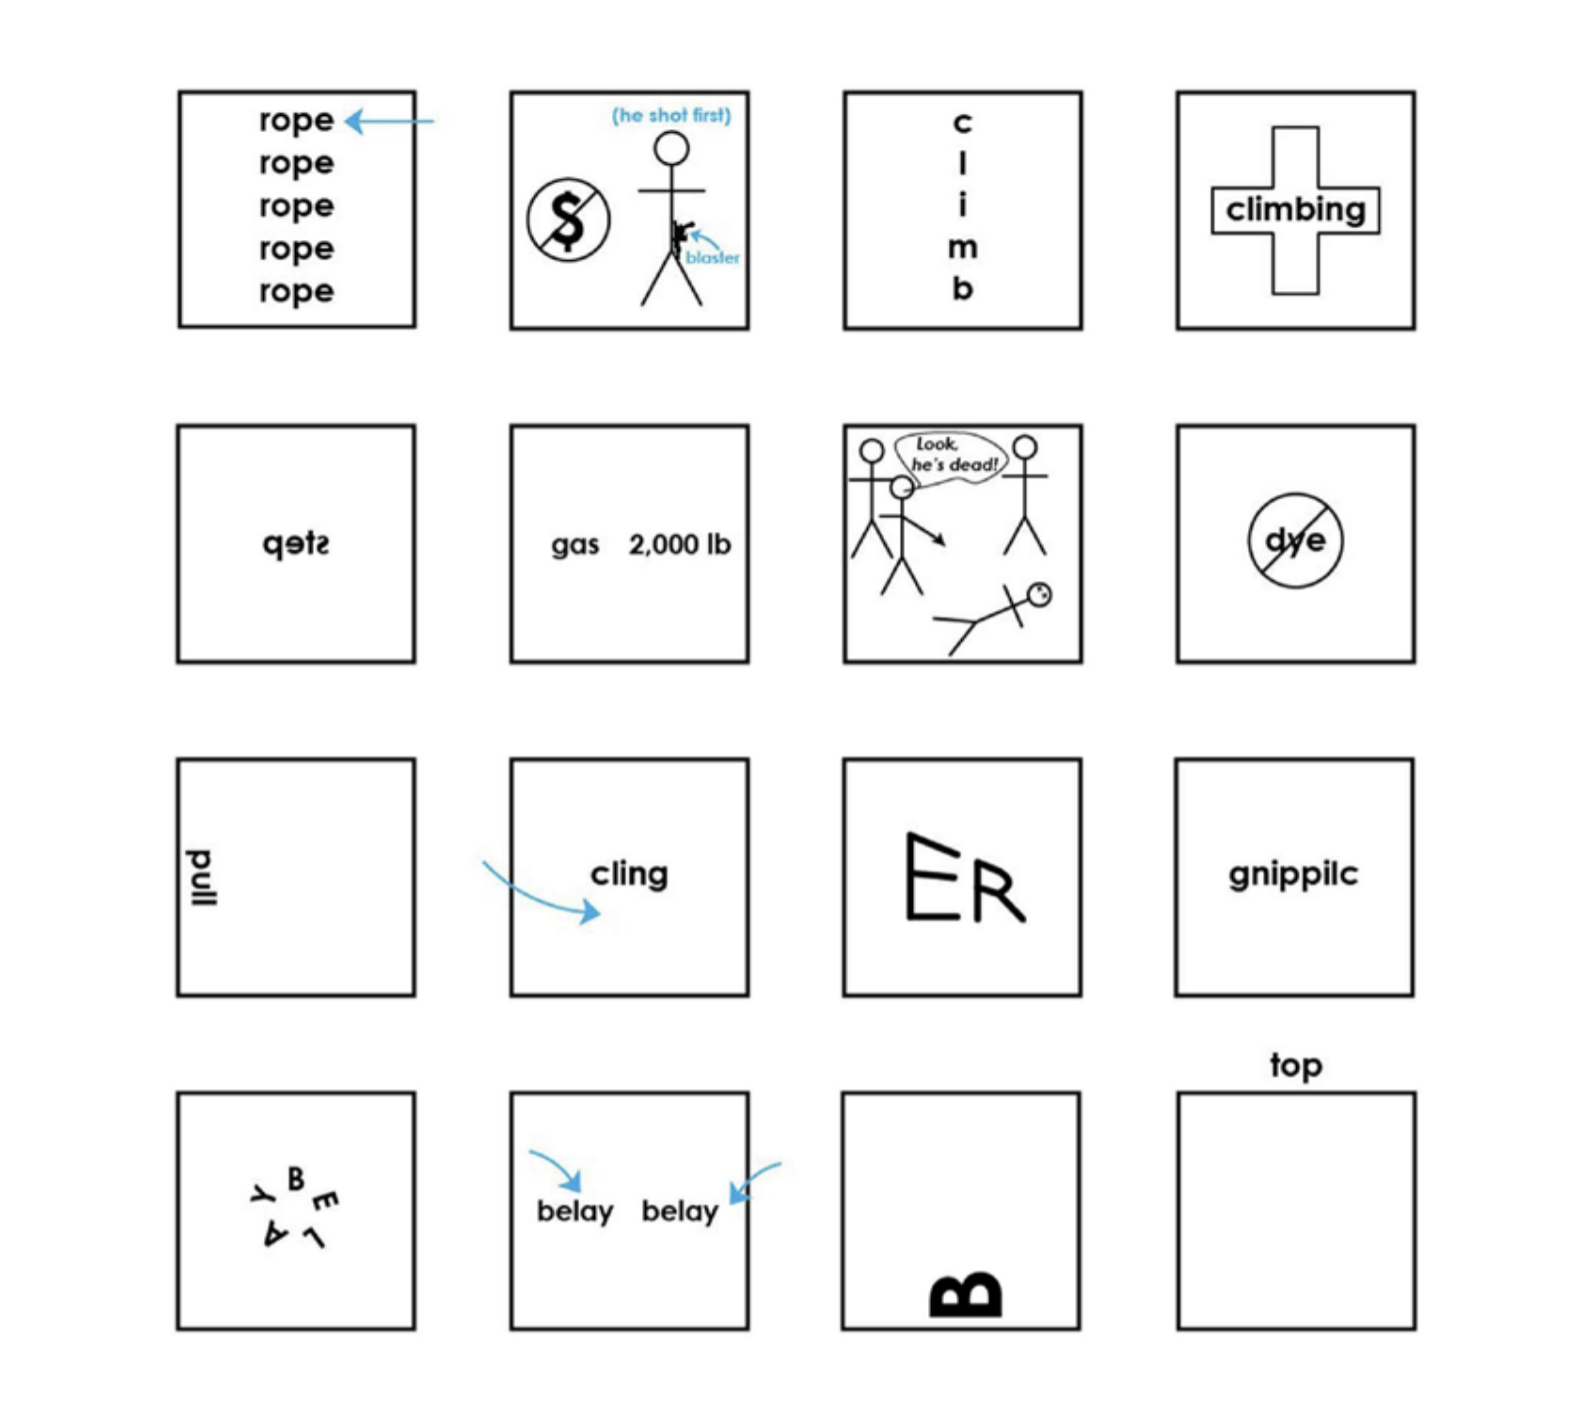 Printable Games For Adults - Best Coloring Pages For Kids - Printable Matchstick Puzzles